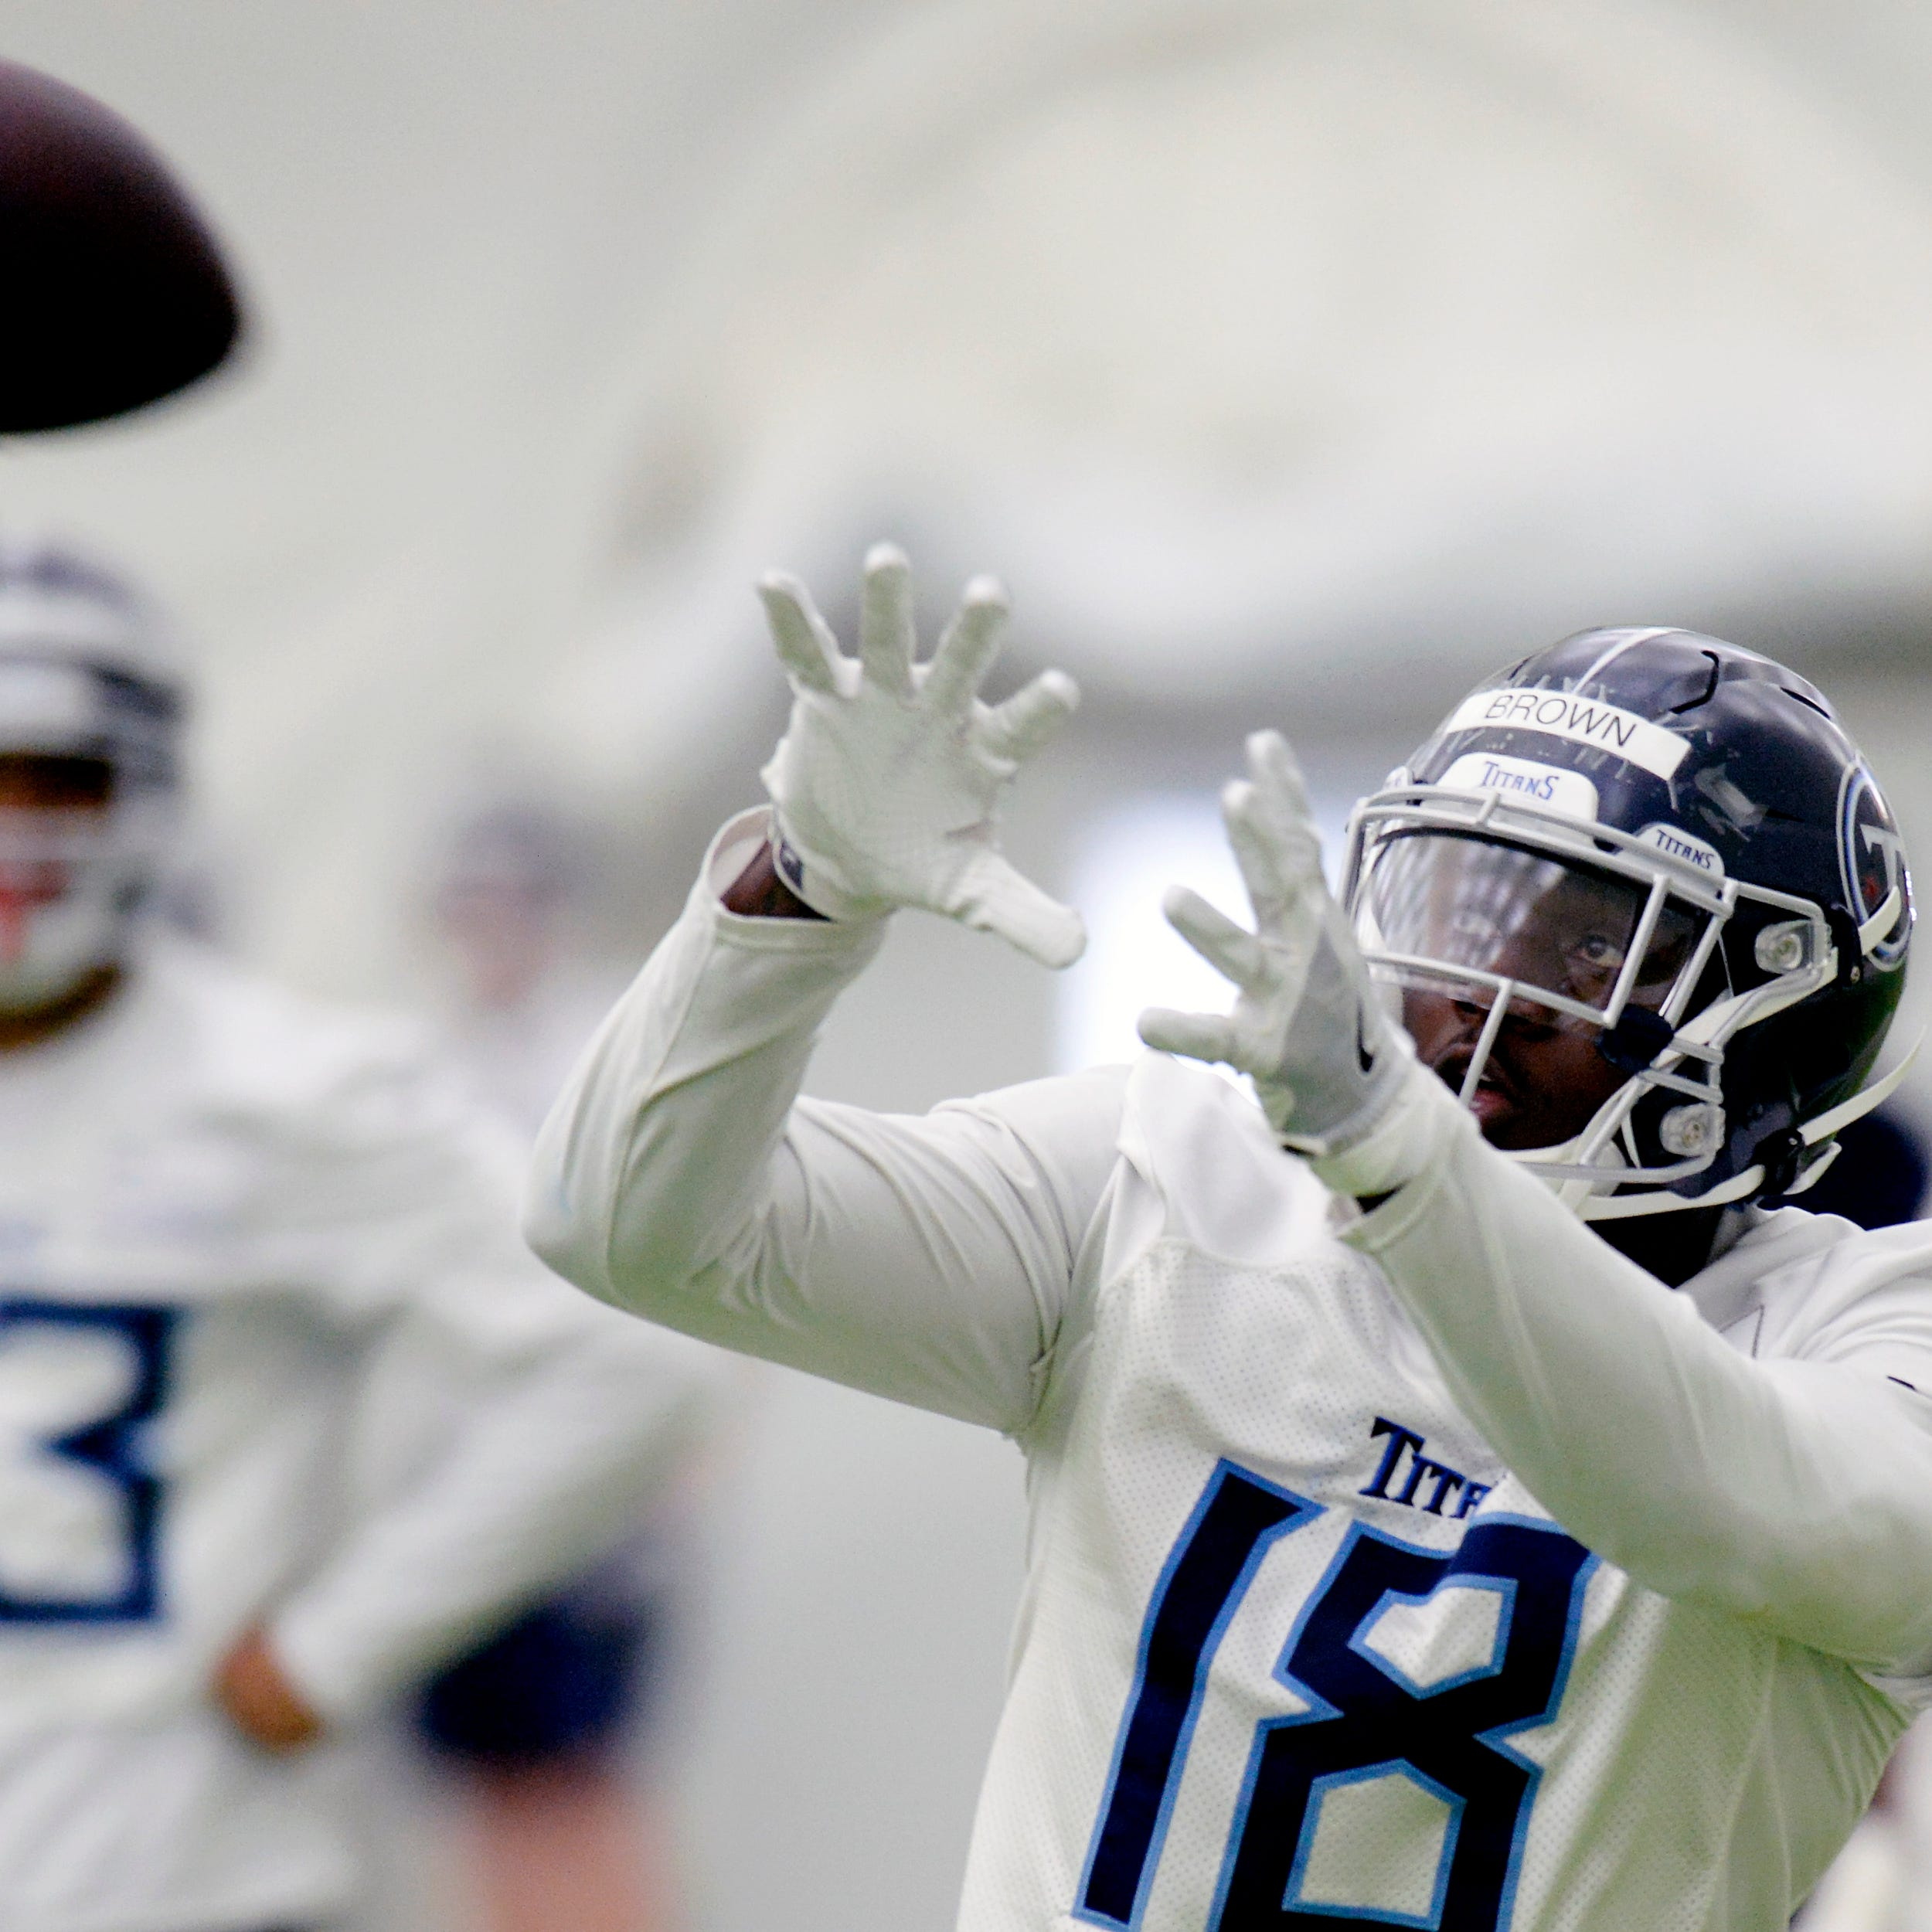 Titans rookie minicamp: No Jeffery Simmons, receiver A.J. Brown looks like an linebacker